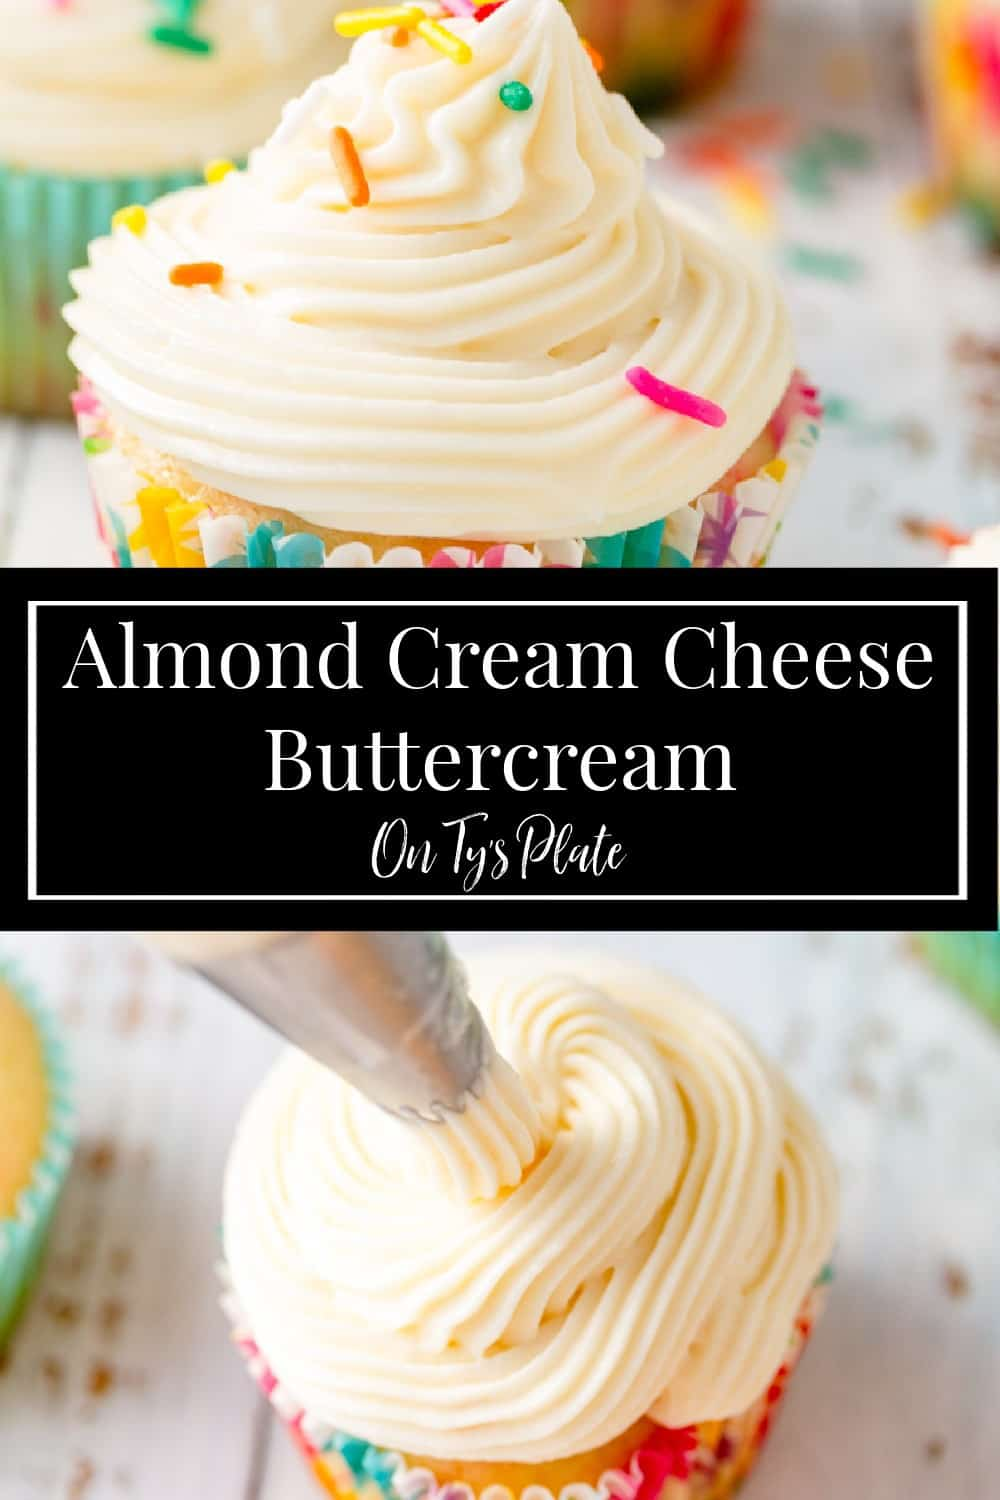 Almond Cream Cheese Buttercream